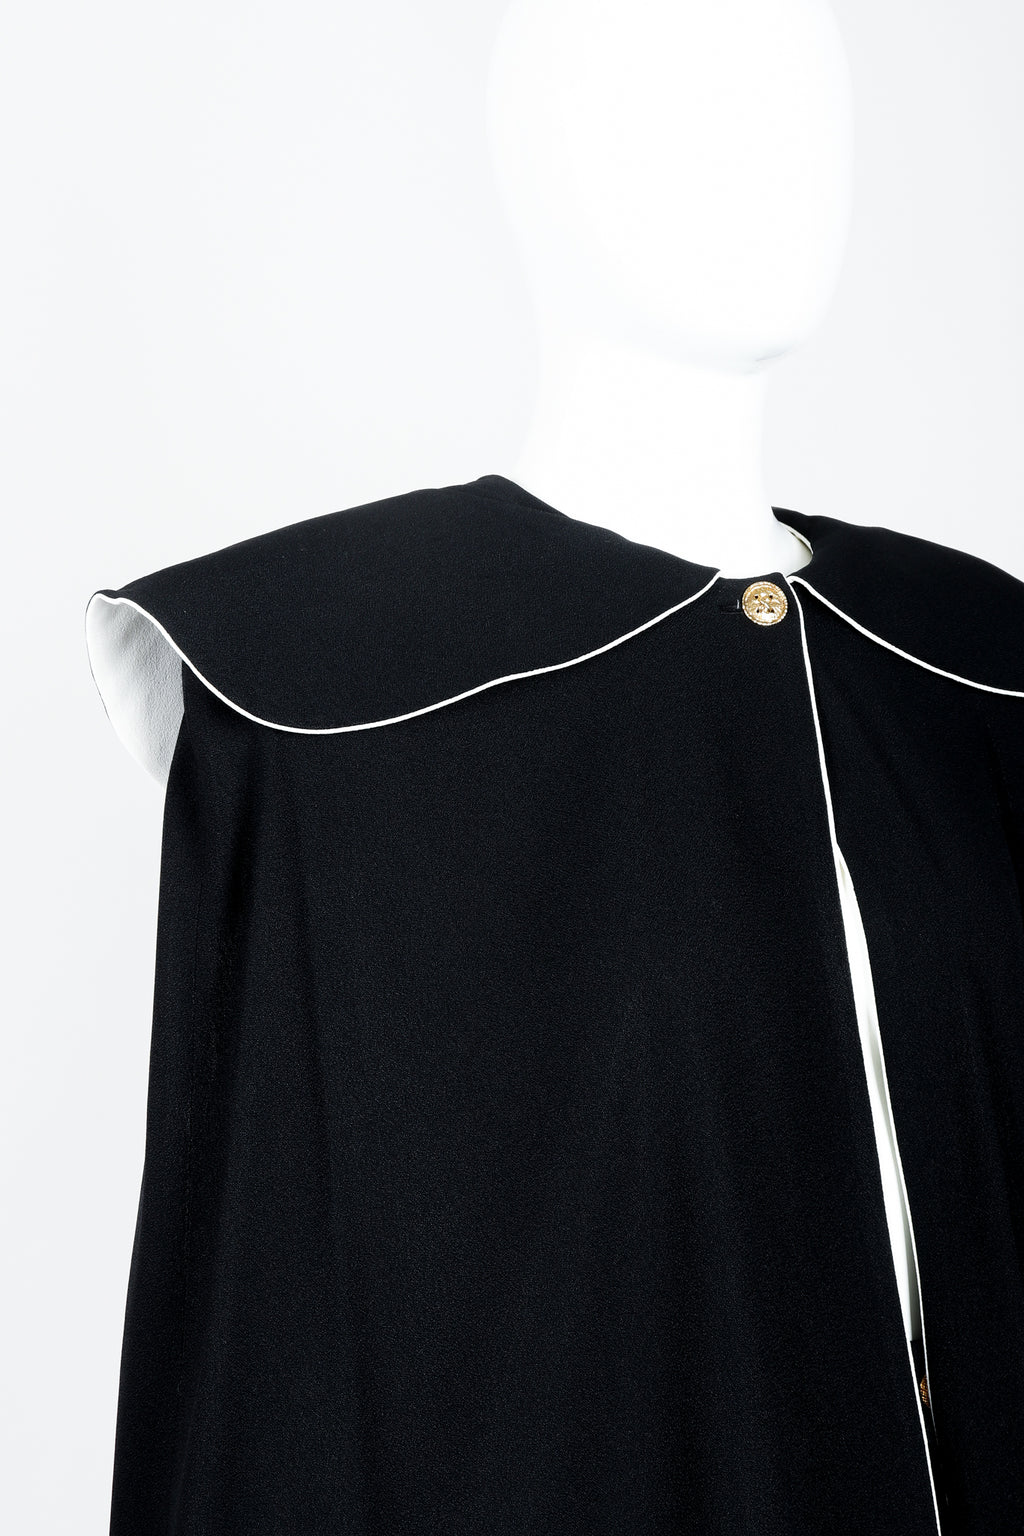 Vintage Sonia Rykiel Crepe Cape & Pant Set on mannequin neckline at Recess Los Angeles